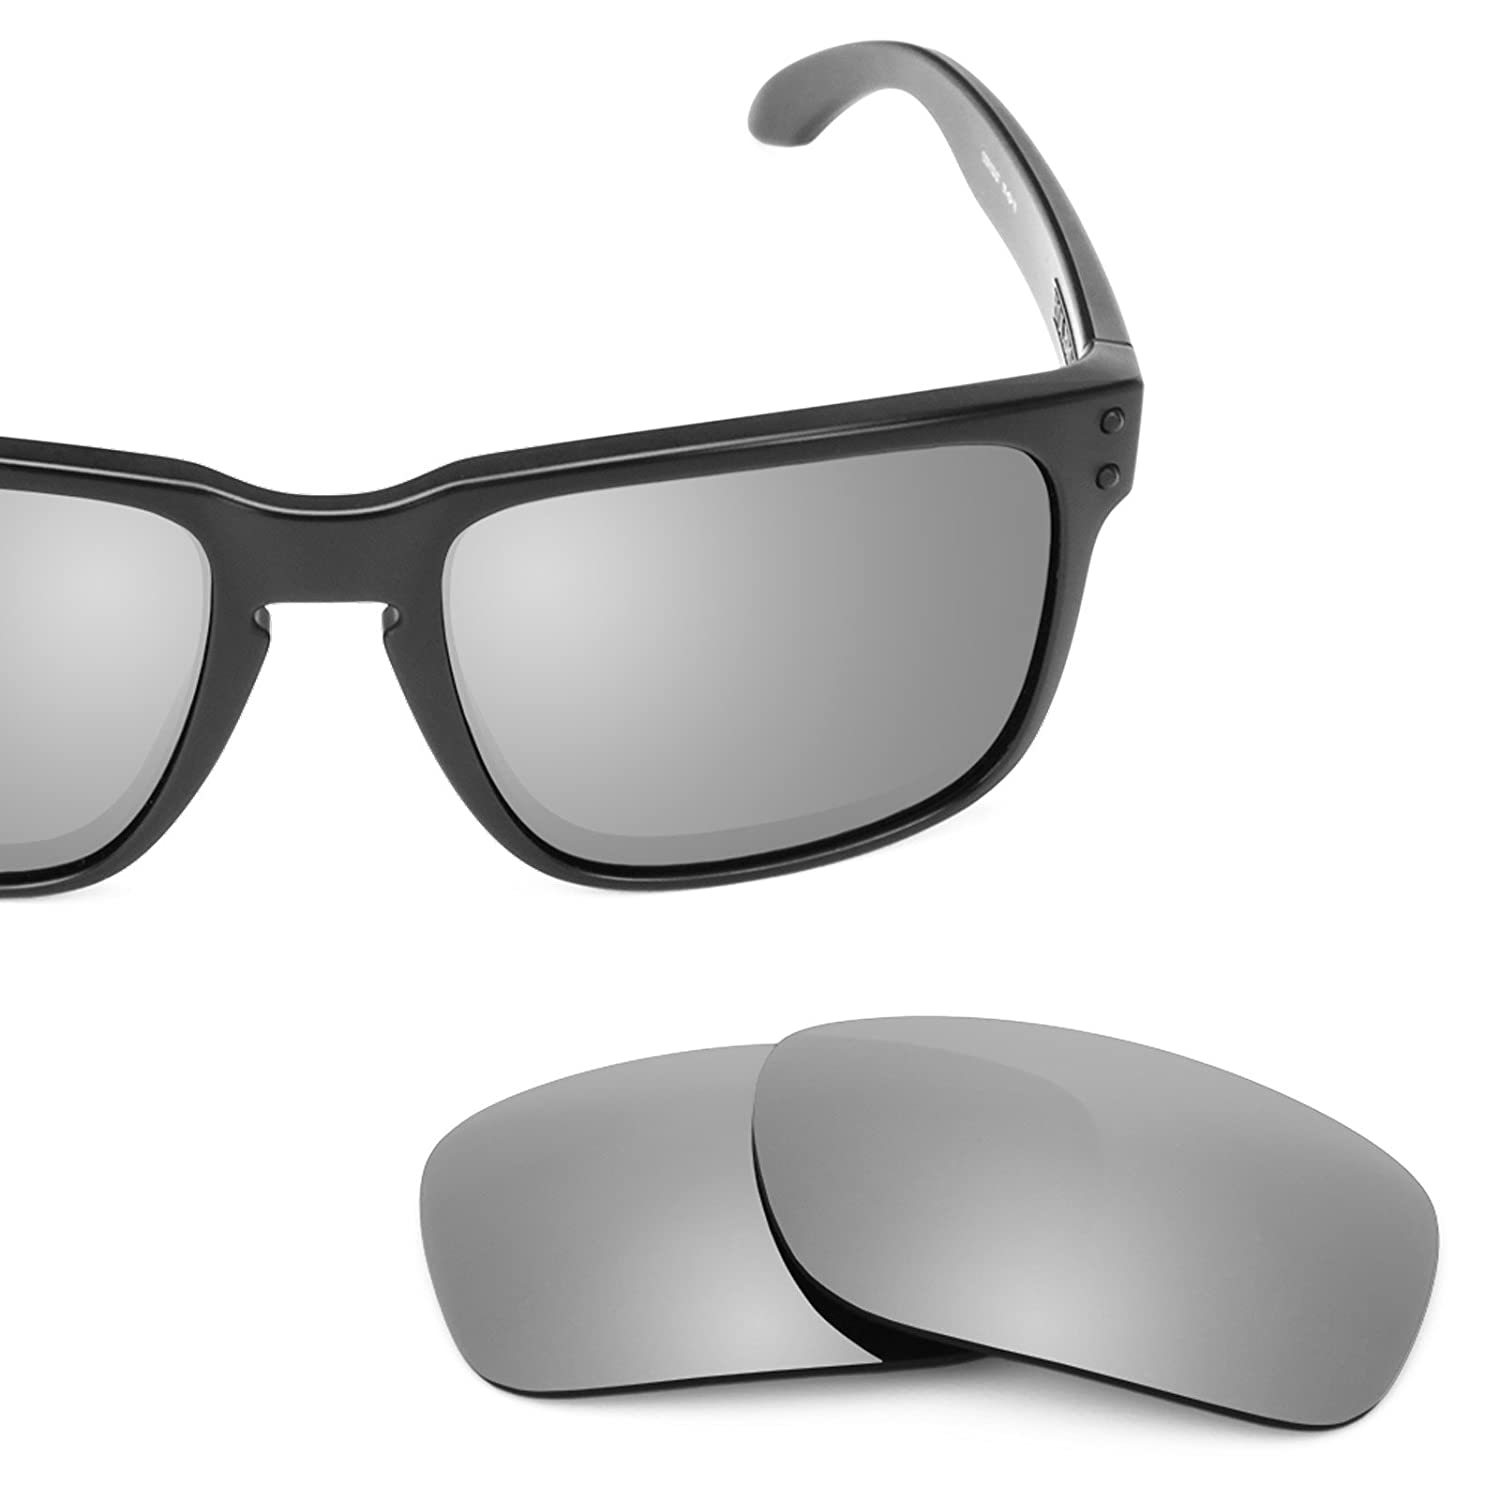 9cdc7d126c Revant Replacement Lenses for Oakley Holbrook 2 Pair Combo Pack K004  Amazon.co.uk   Clothing